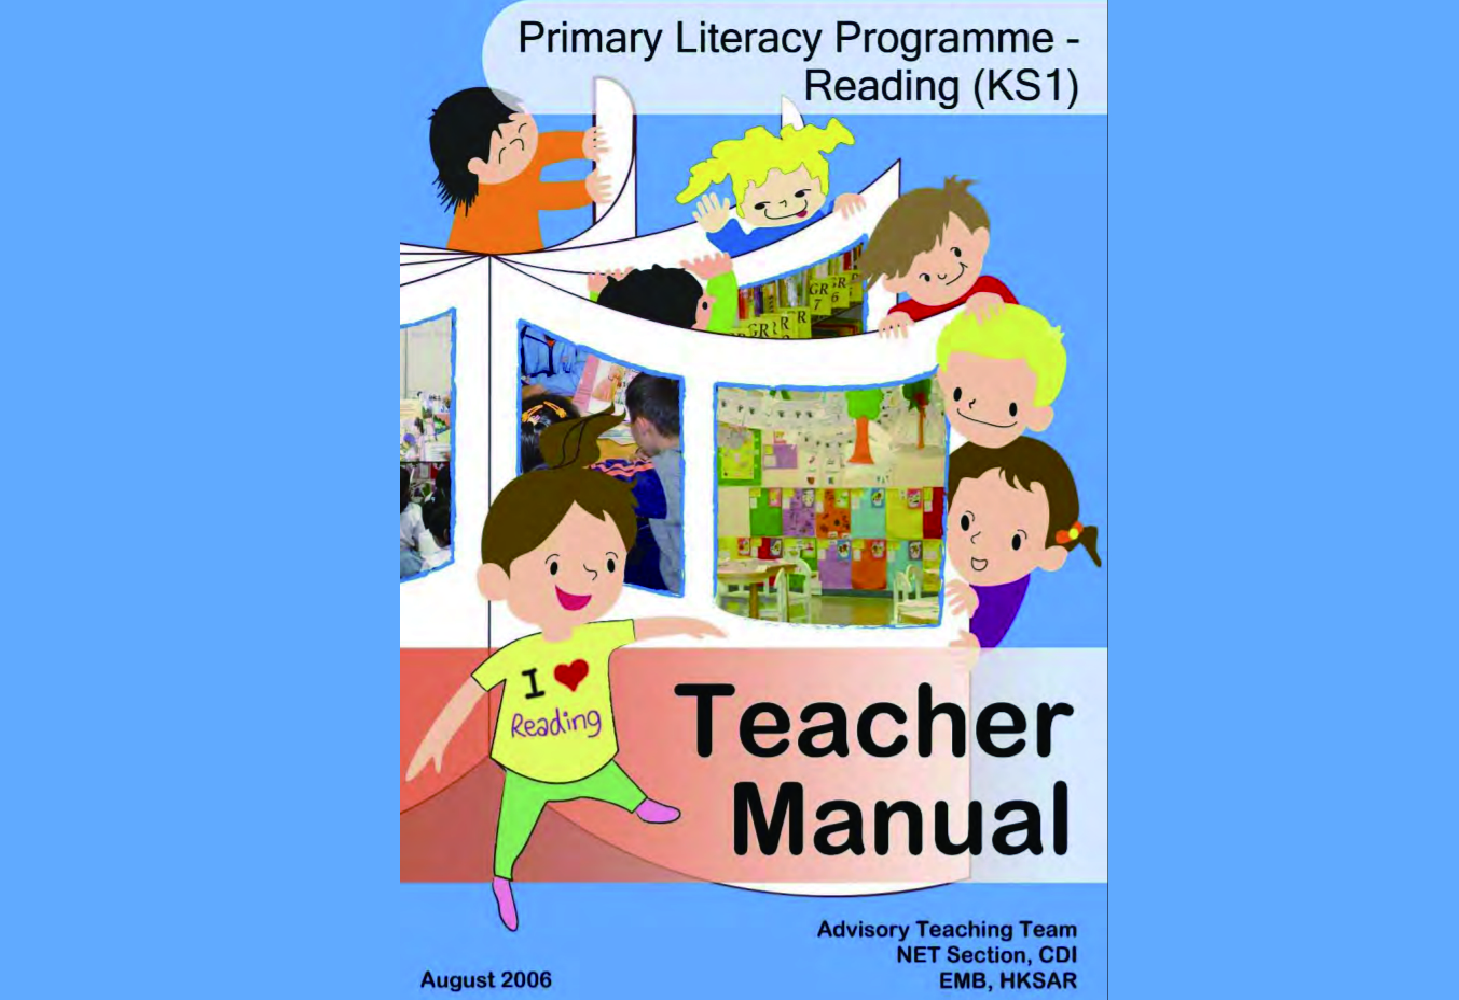 The Primary Literacy Programme – Reading (KS1) Teacher Manual (Versions 2005 & 2006)